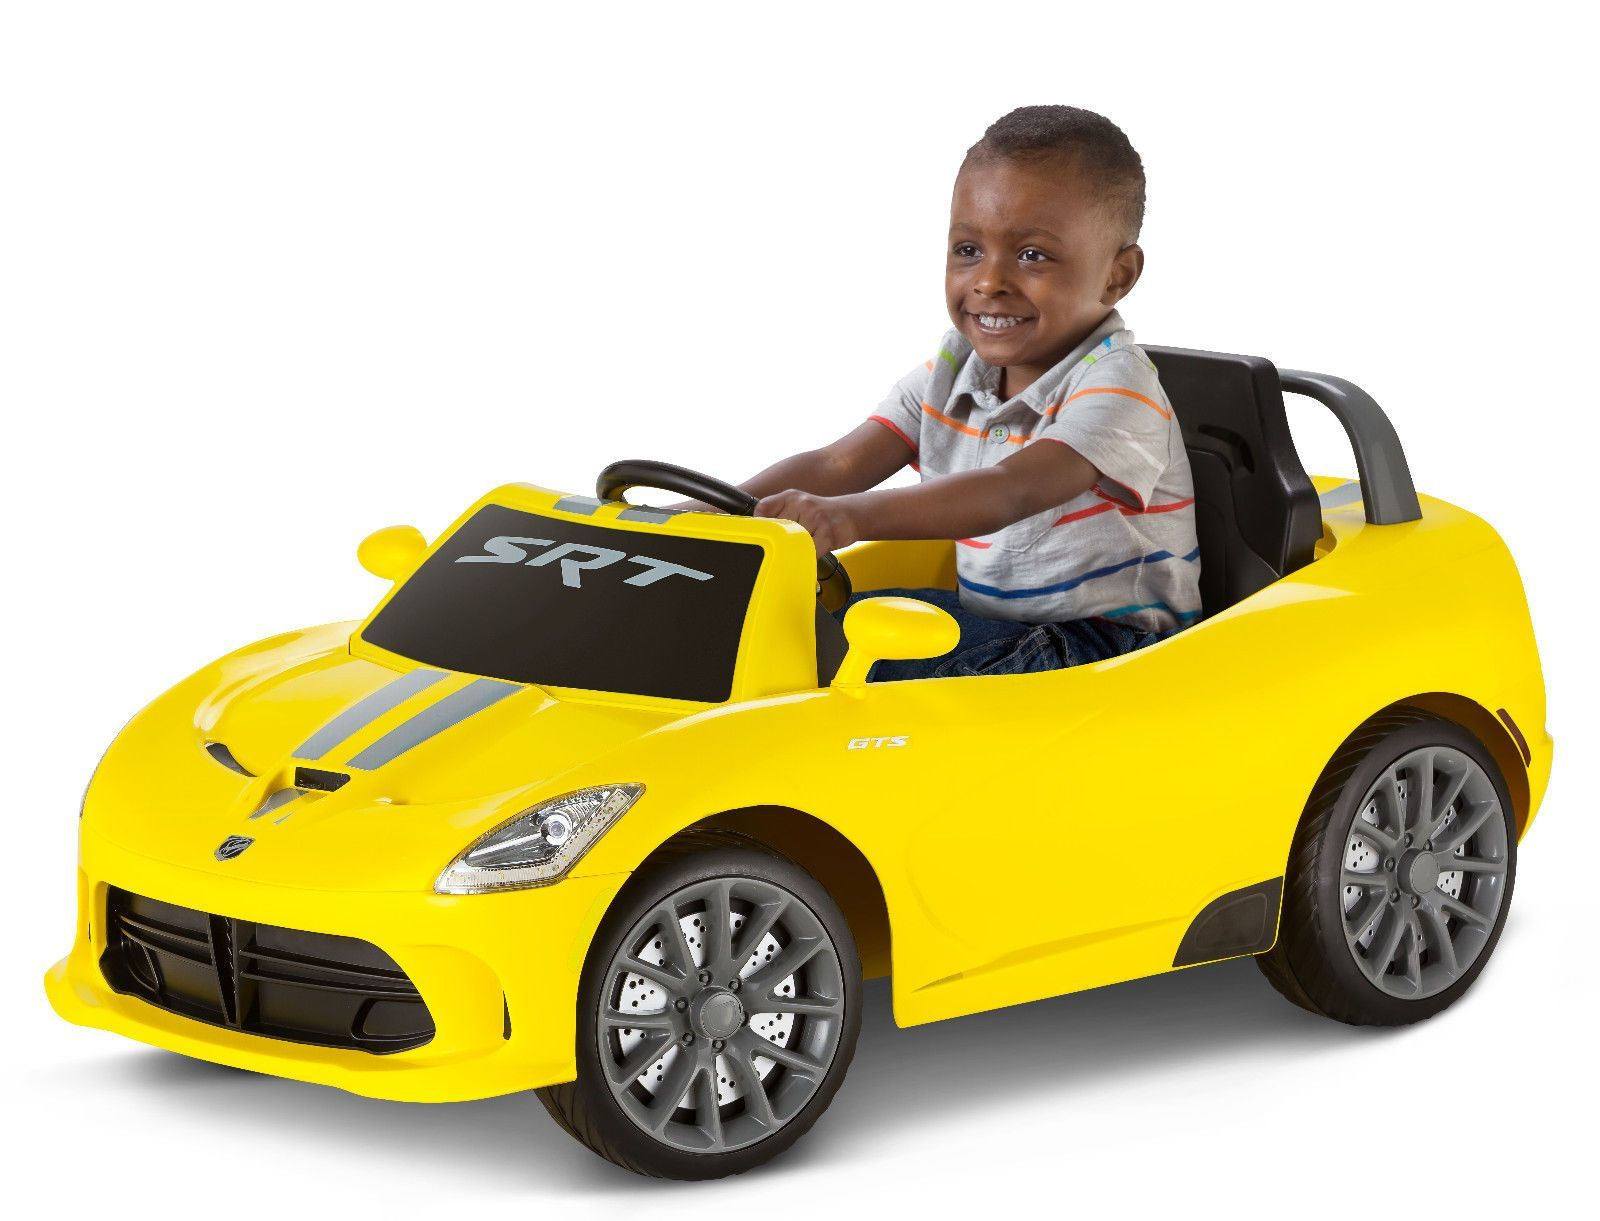 6V Yellow Dodge Viper Battery Powered Ride On (On Sale)